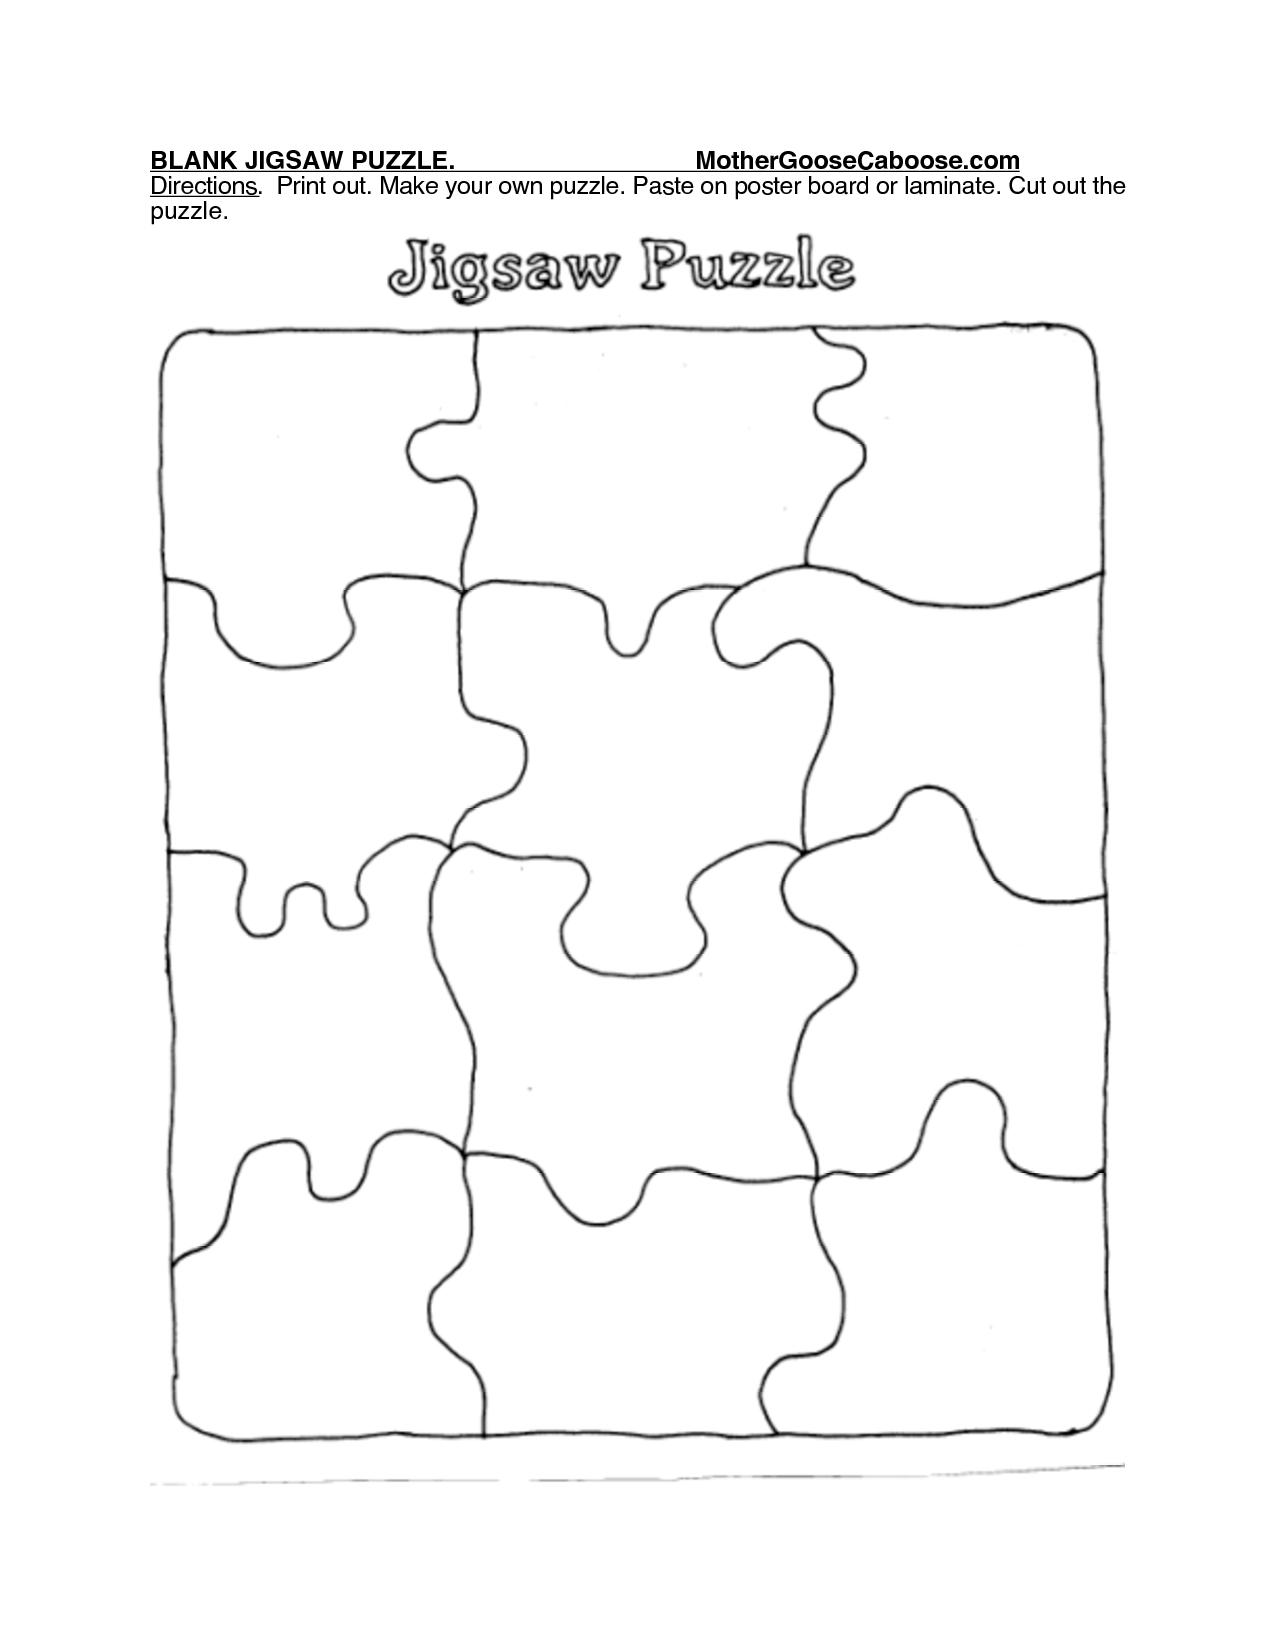 Printable Puzzle Piece Template | Search Results | New Calendar - Printable Puzzle Jigsaw